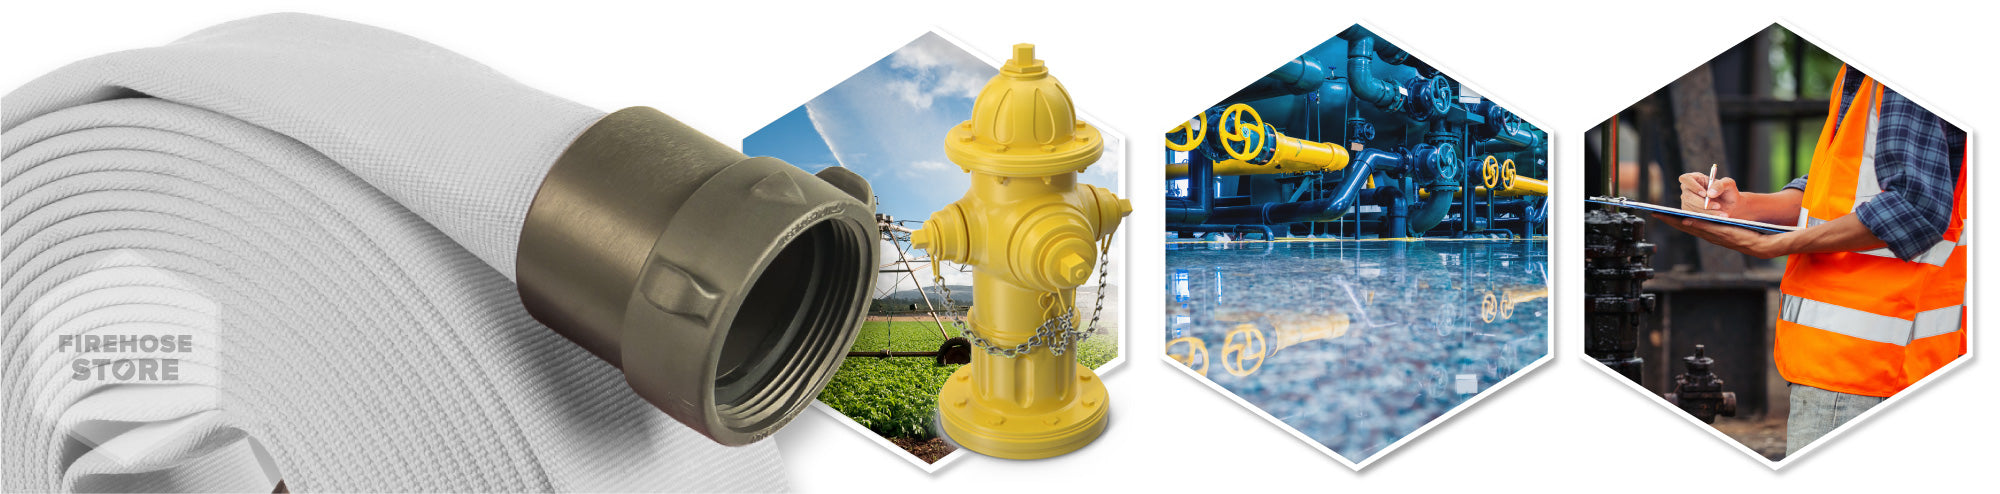 1-1-2 Inch x 100 Feet Fire Hydrant Hose Graphic Overview